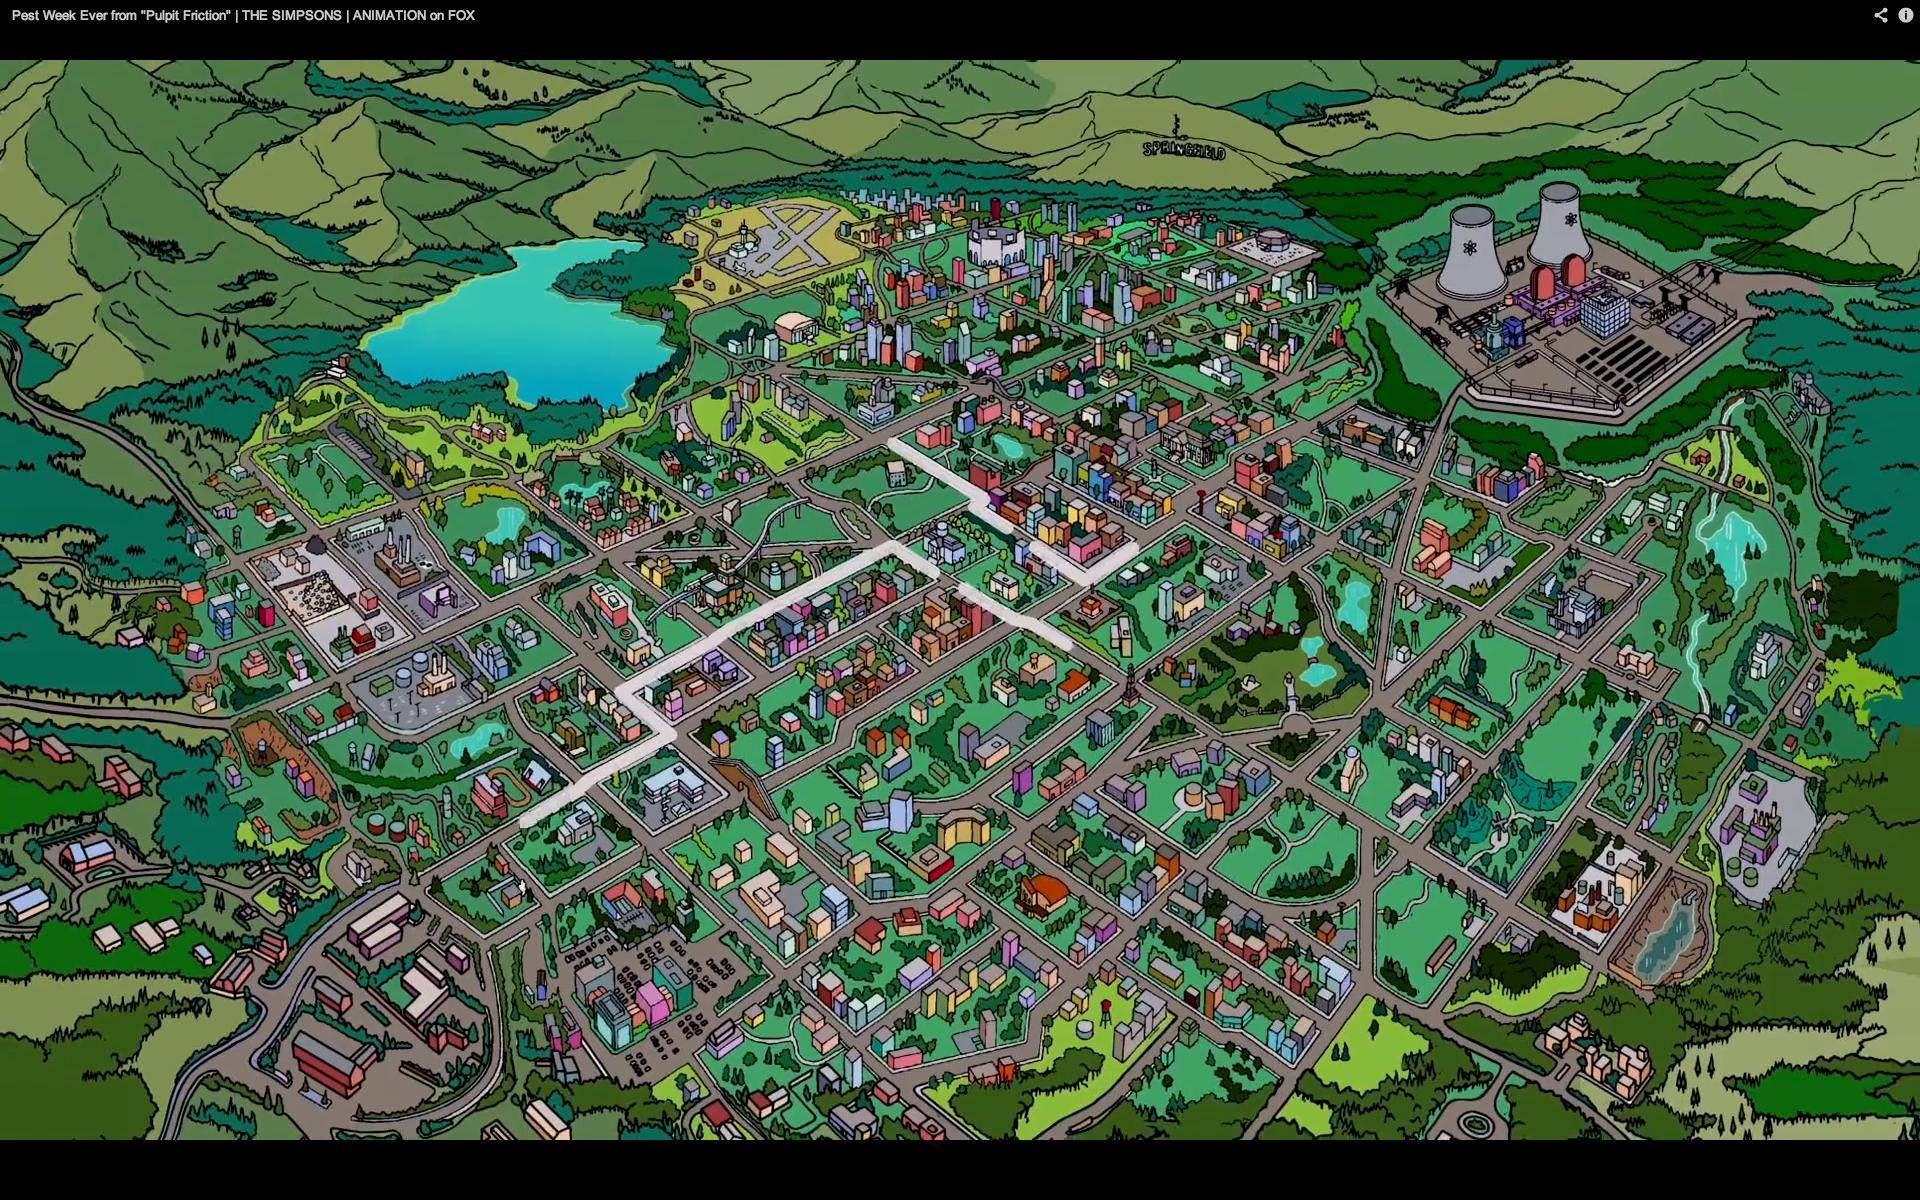 Springfield   cool   Simpsons springfield map, Springfield simpsons on